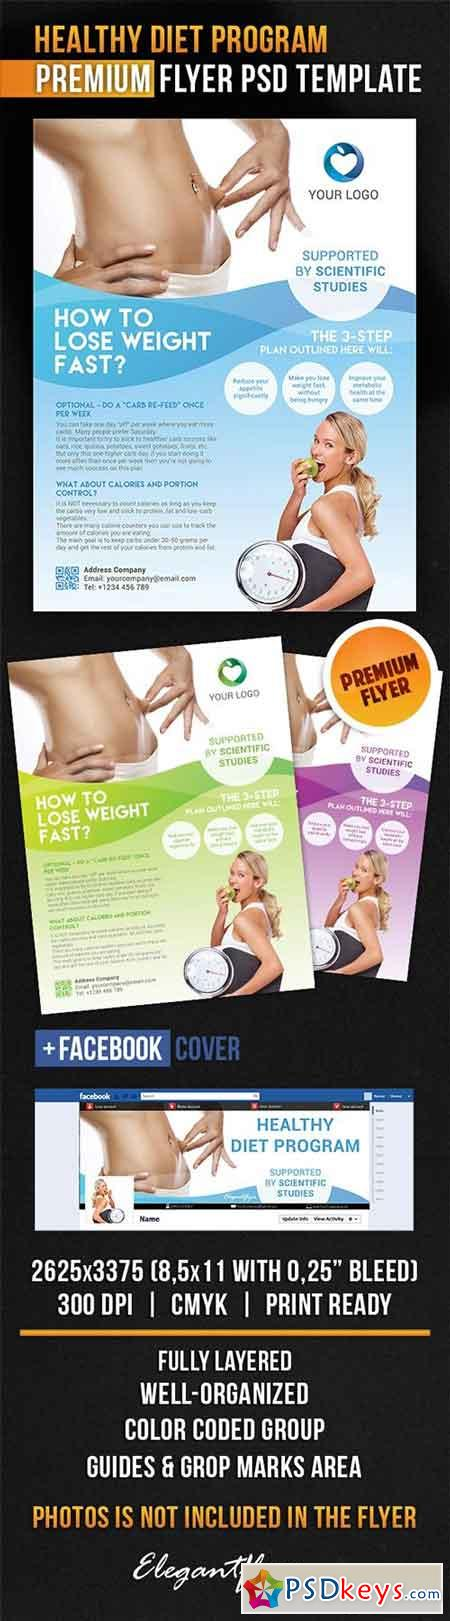 Healthy Diet Program Flyer PSD Template + Facebook Cover